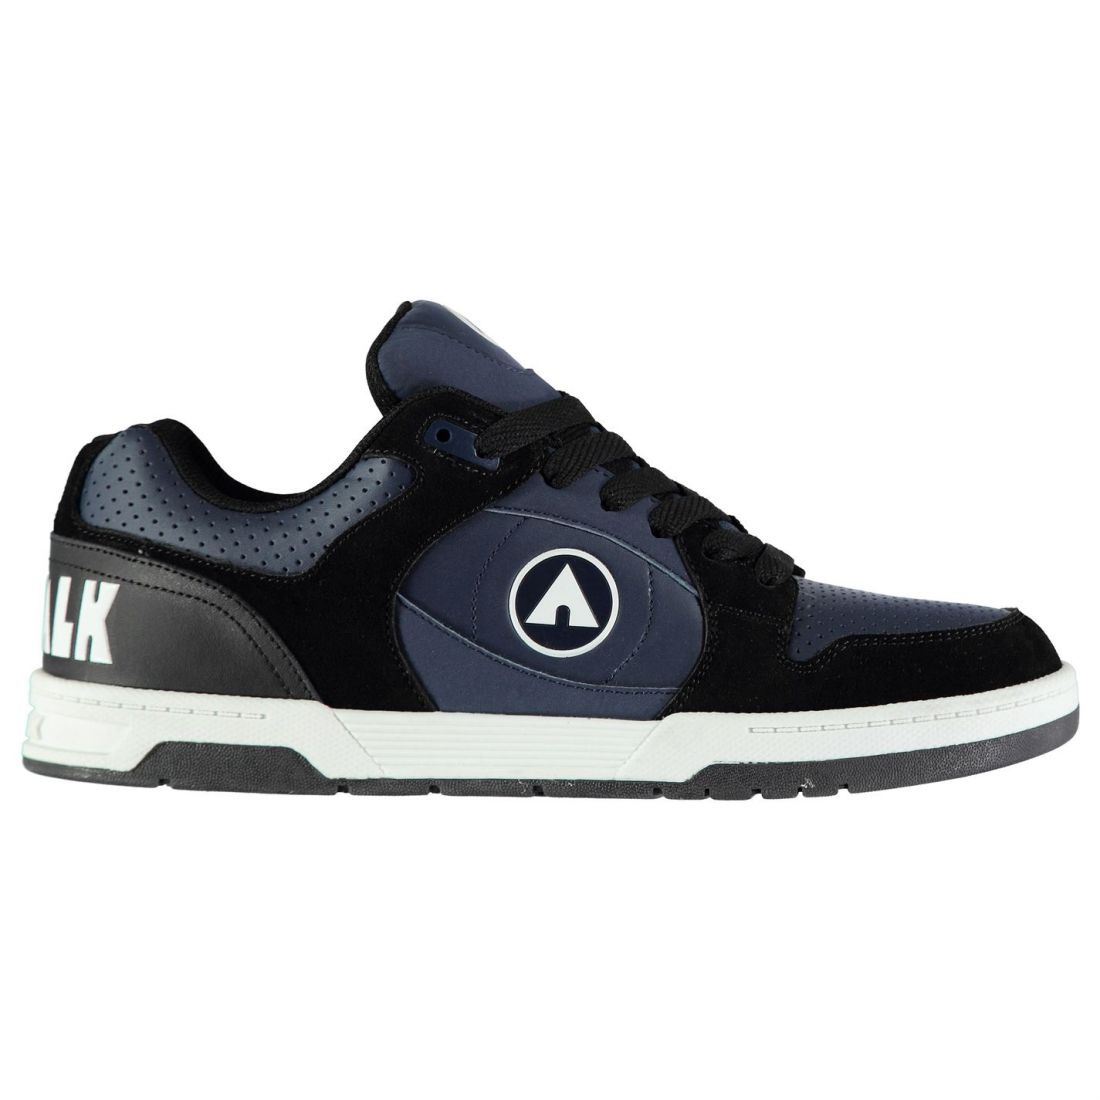 Airwalk Mens Throttle Skate Shoes Low Top Fashion Trainers Lace Up ... a9fee539325b